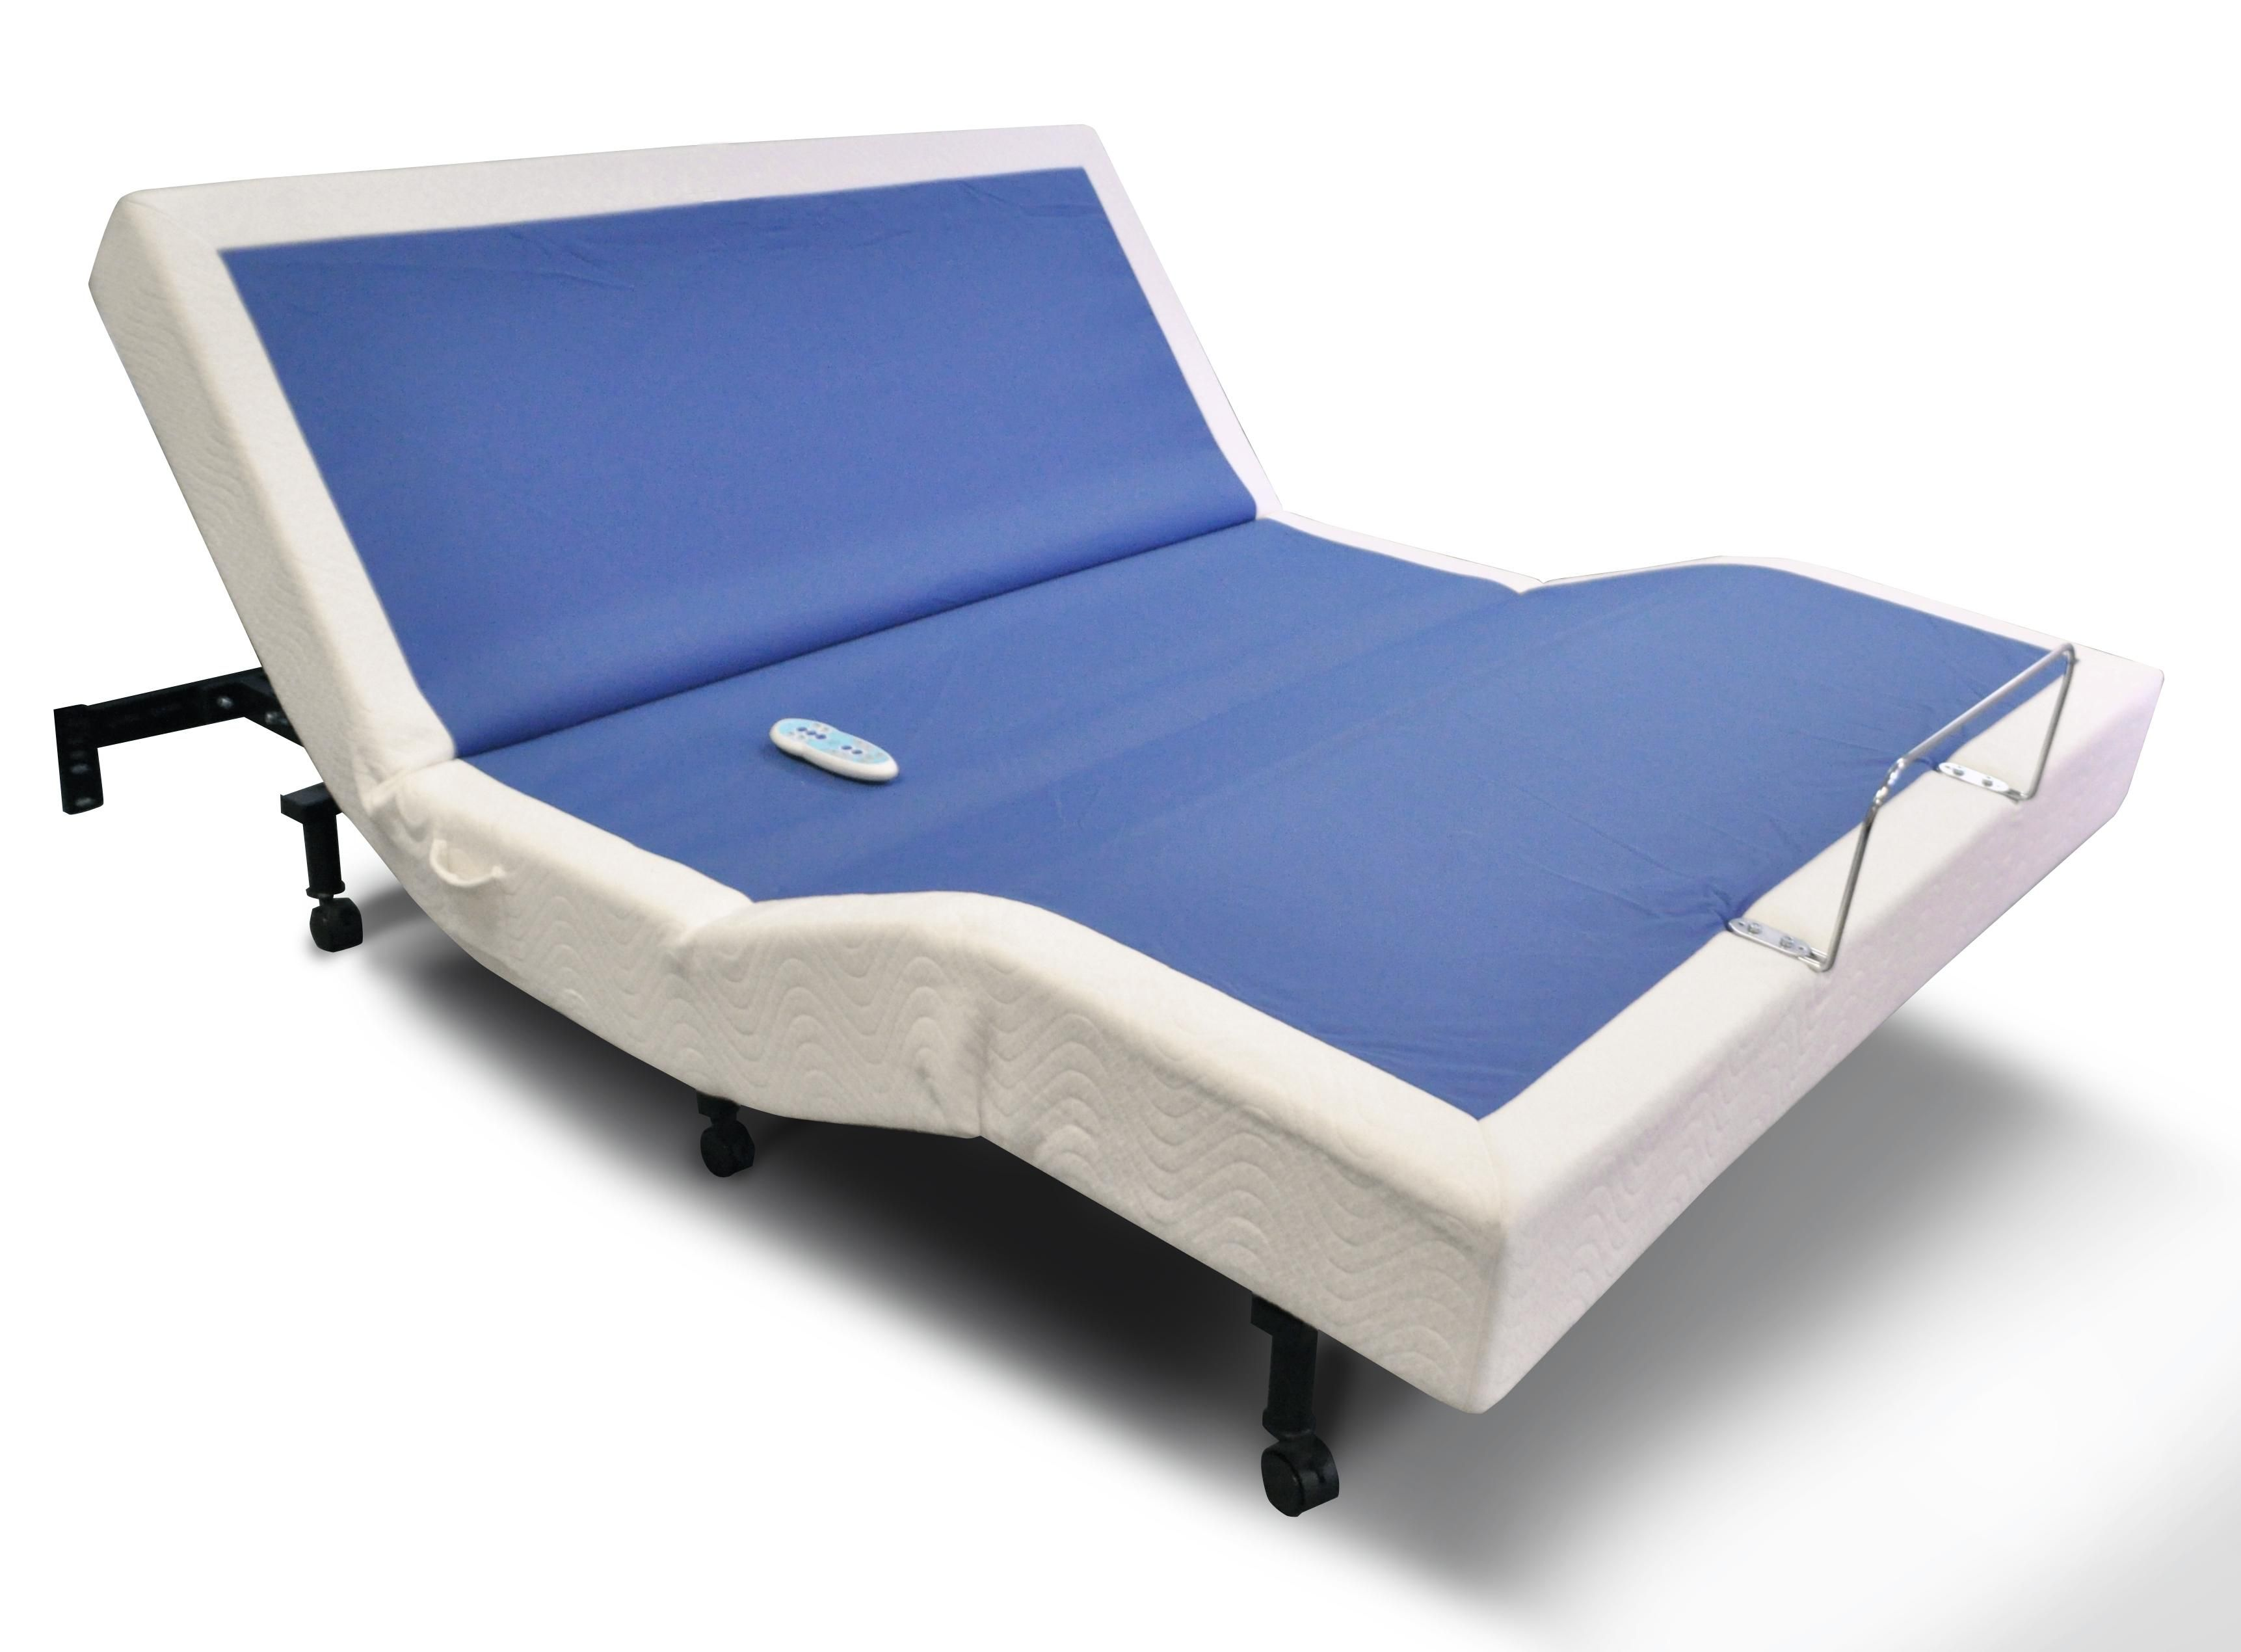 Electric adjustable bedfor leisure place if you are